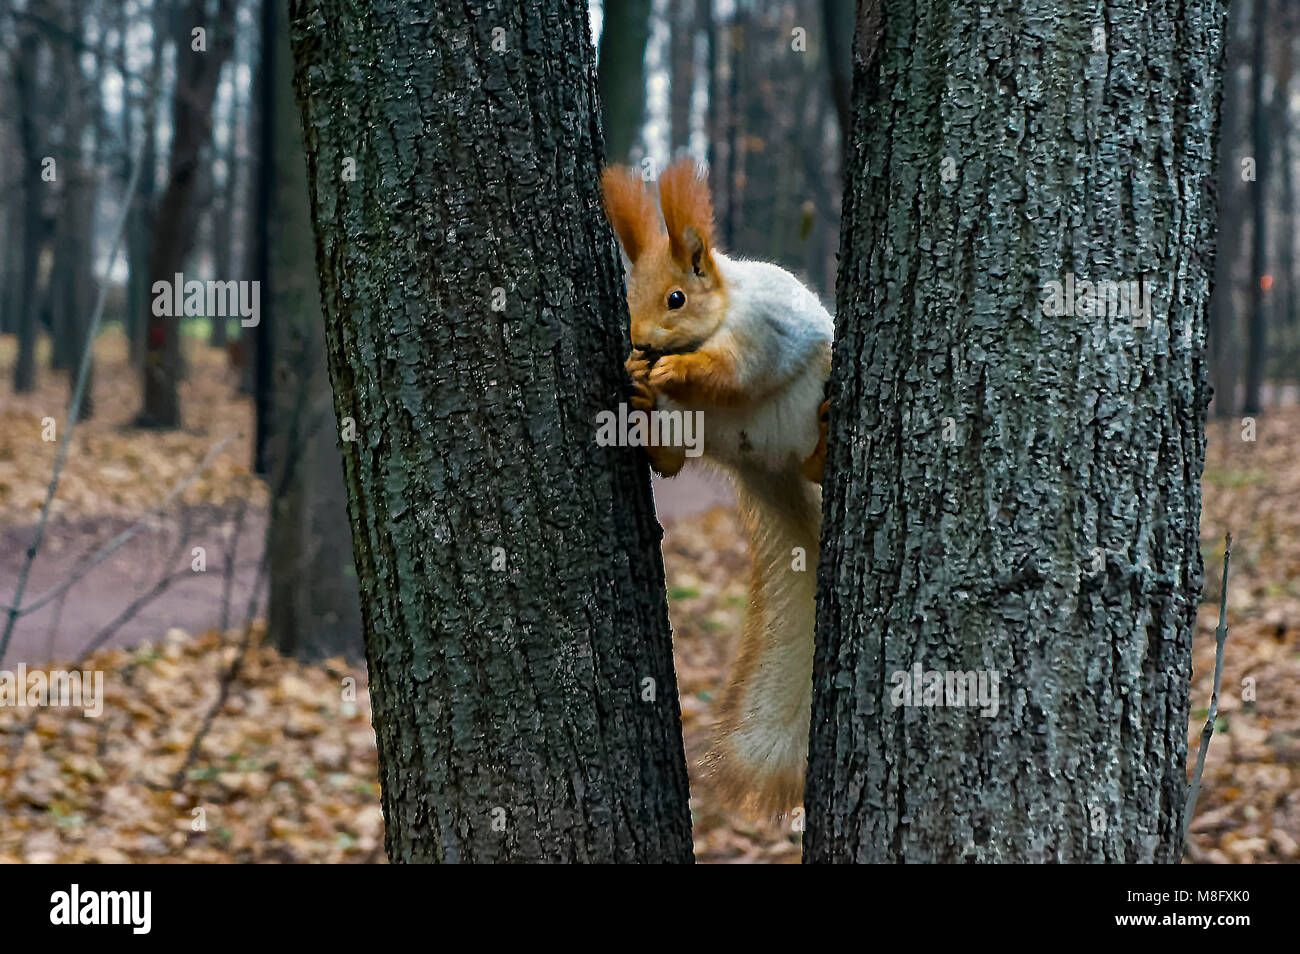 Squirrel executing a split - Stock Image